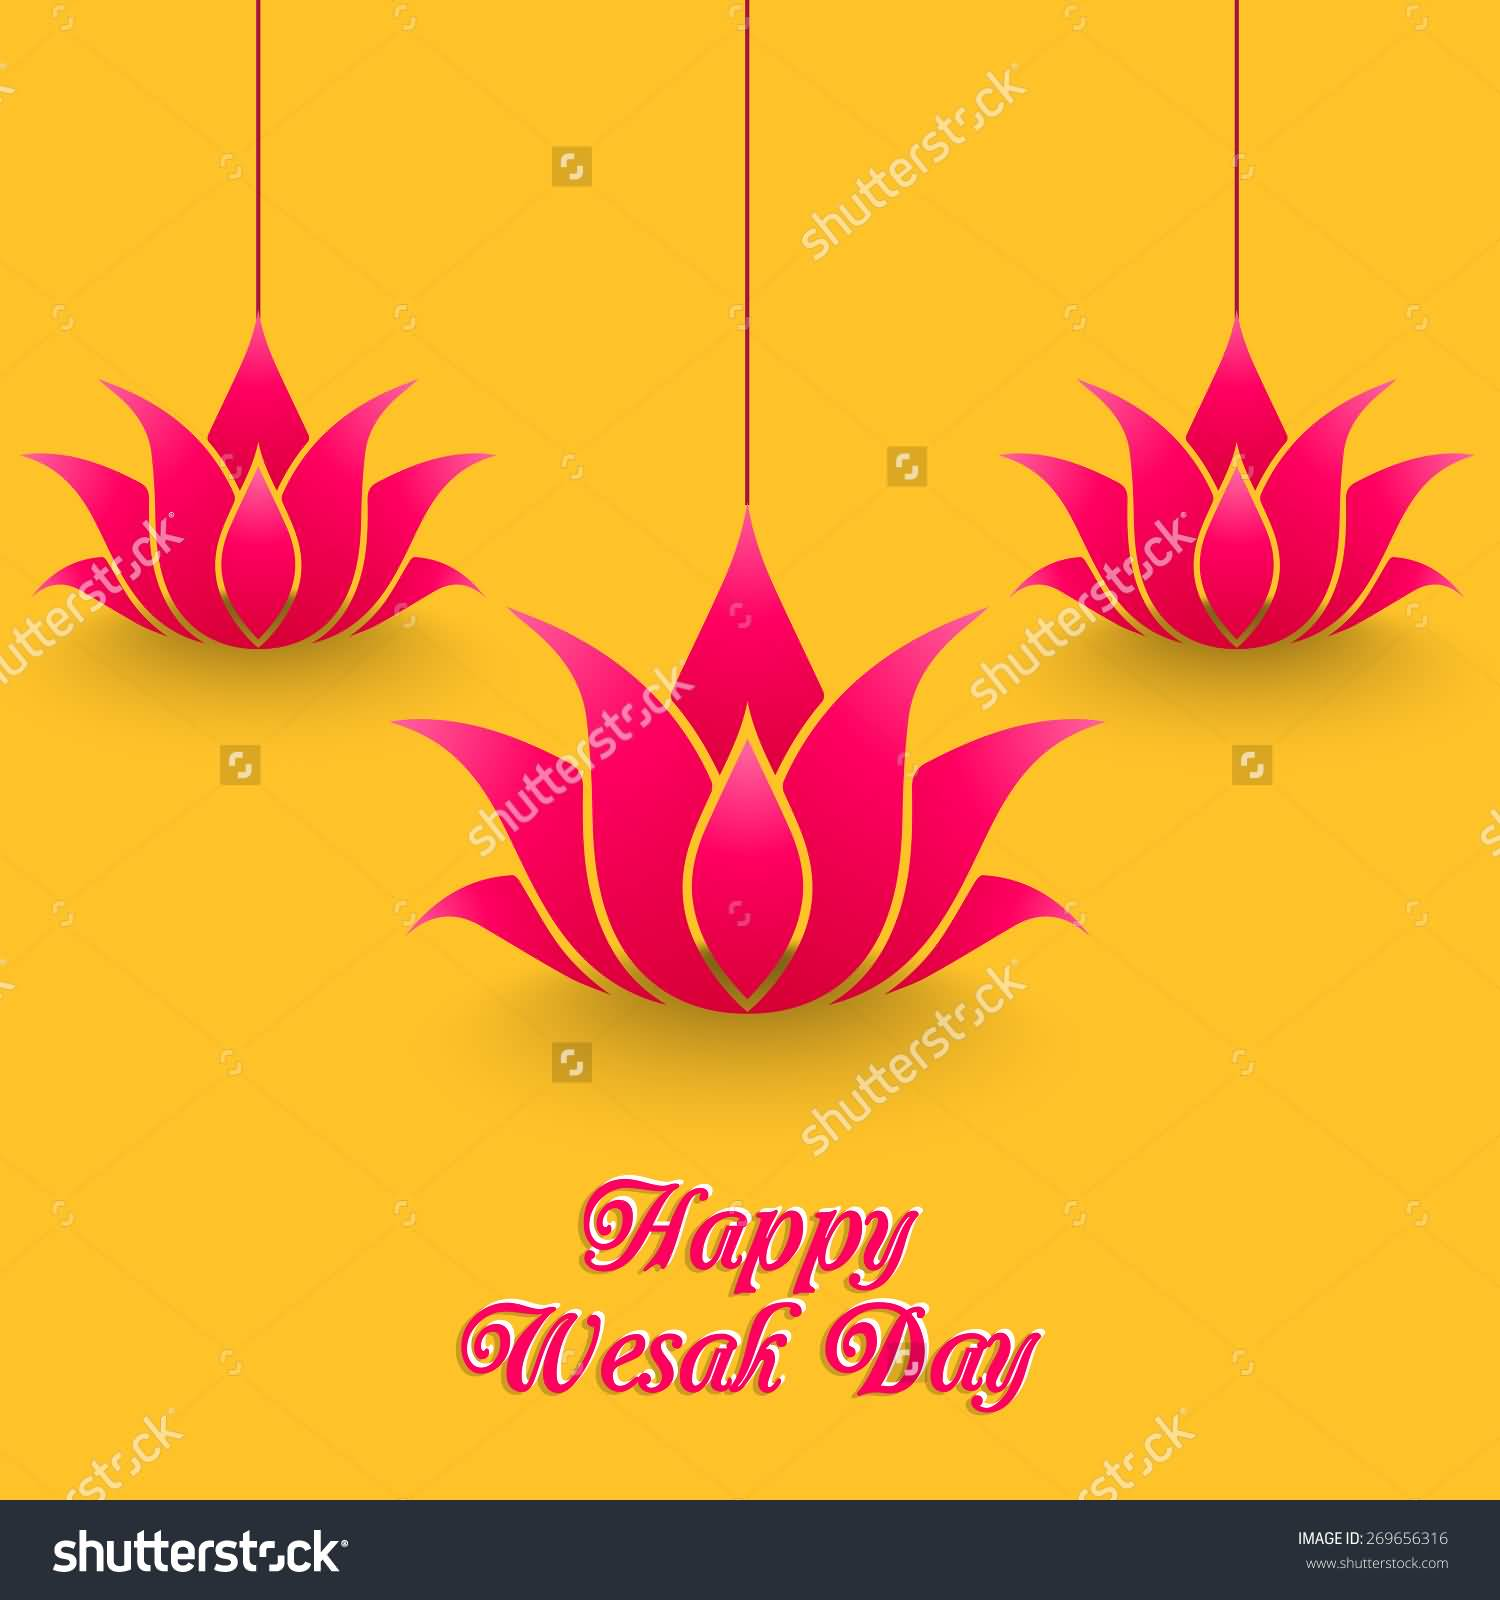 8-Happy Vesak Day Wishes